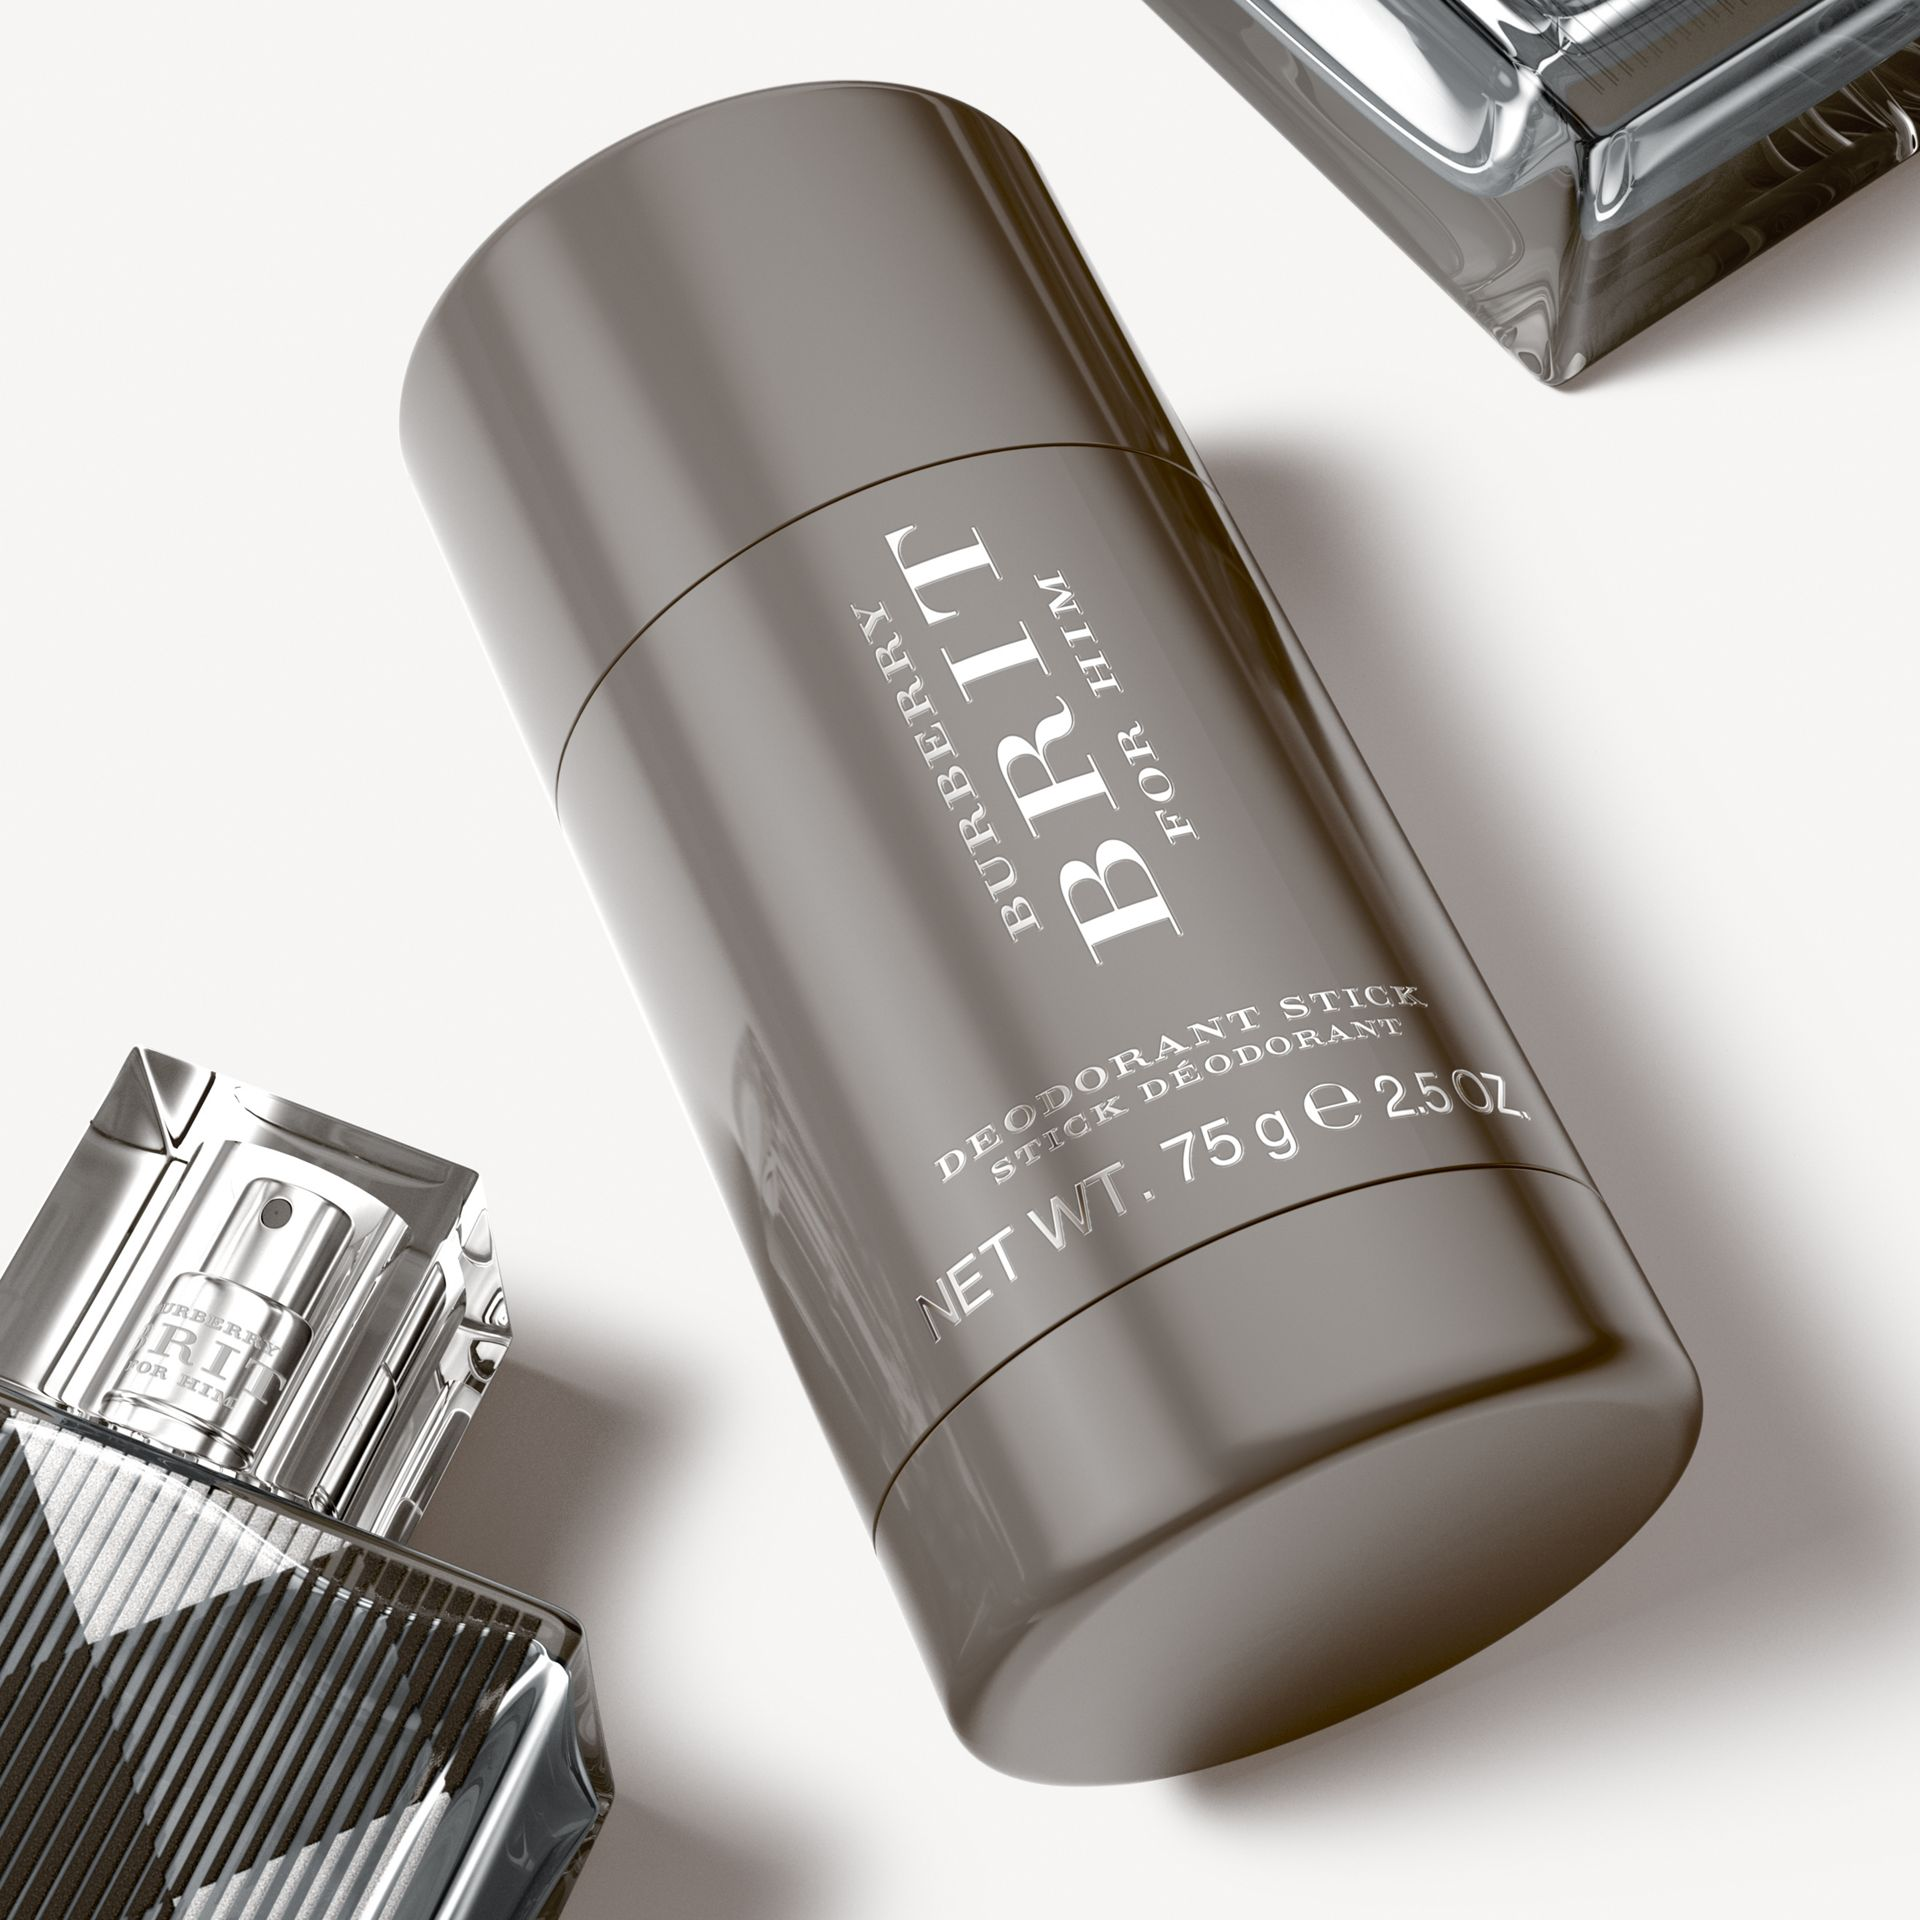 Burberry Brit For Him deodorante stick 75 g (Ml) - Uomo | Burberry - immagine della galleria 1